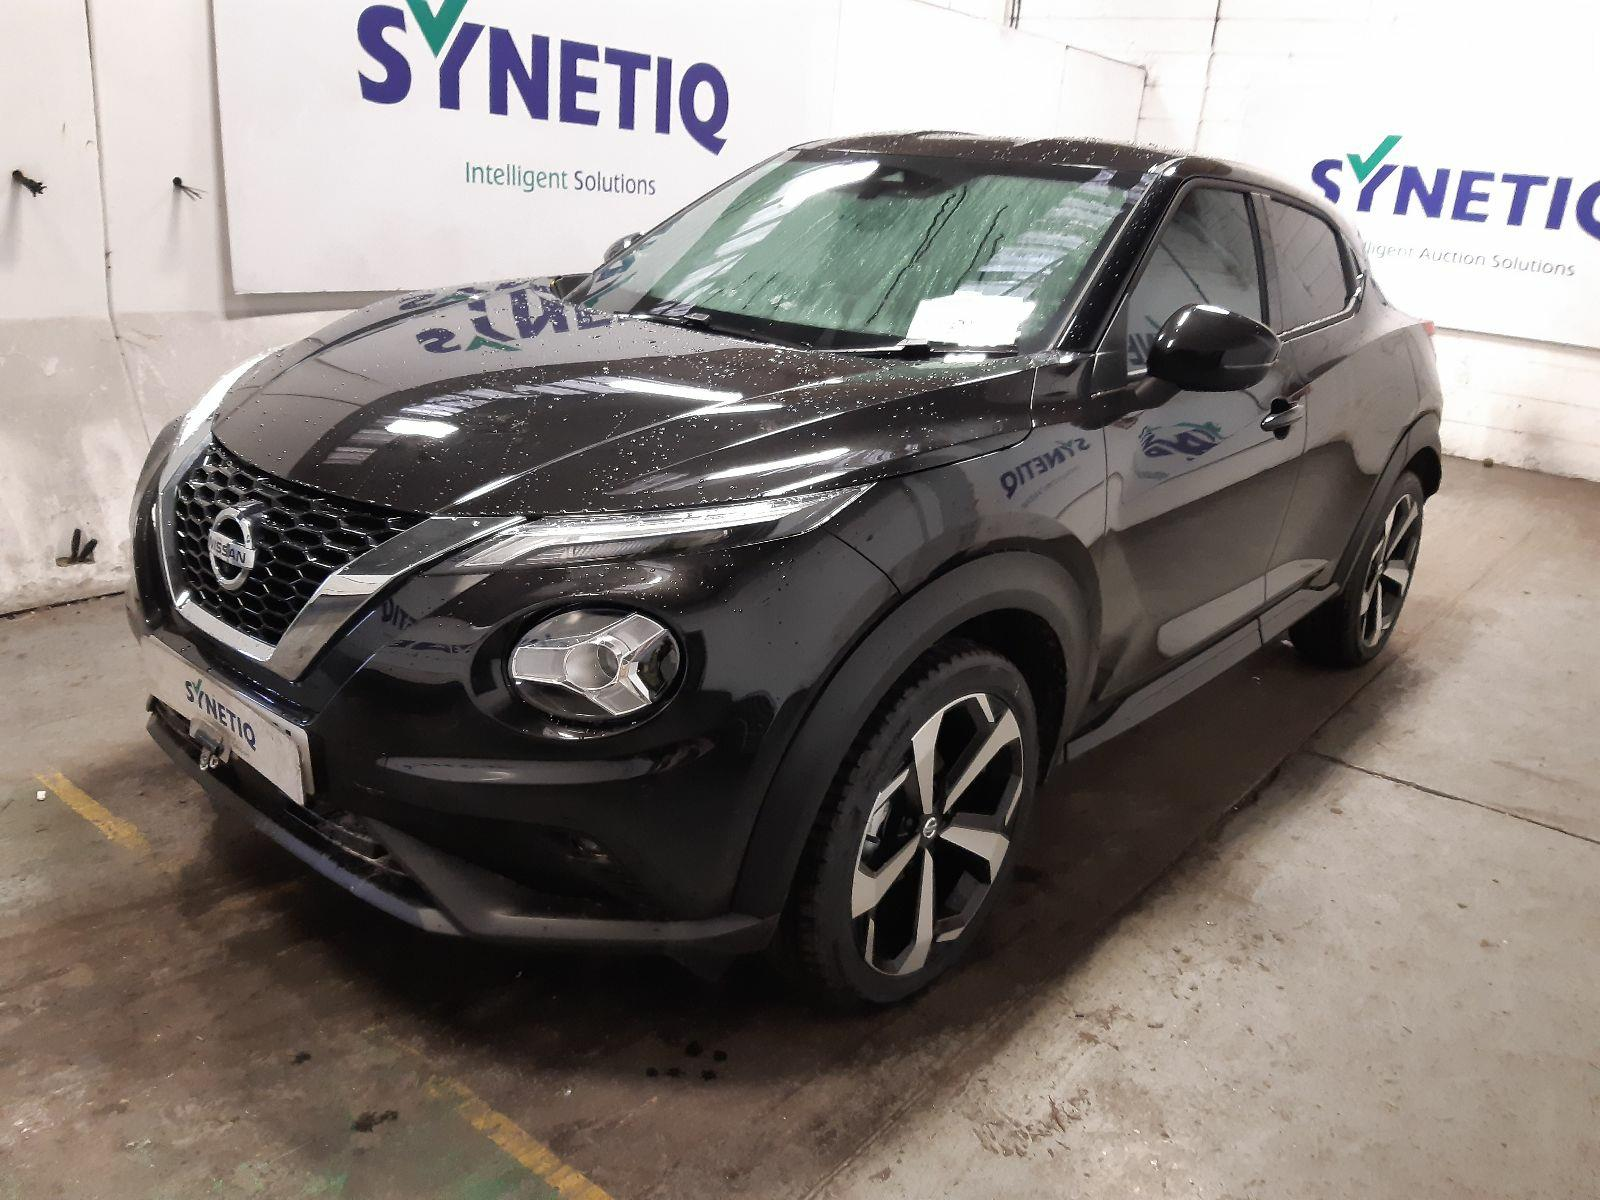 Synetiq 2020 Nissan Juke Mk2 F16 Dig T Tekna Dct 5 Door Hatchback Petrol Semi Auto Breaking For Used And Spare Parts